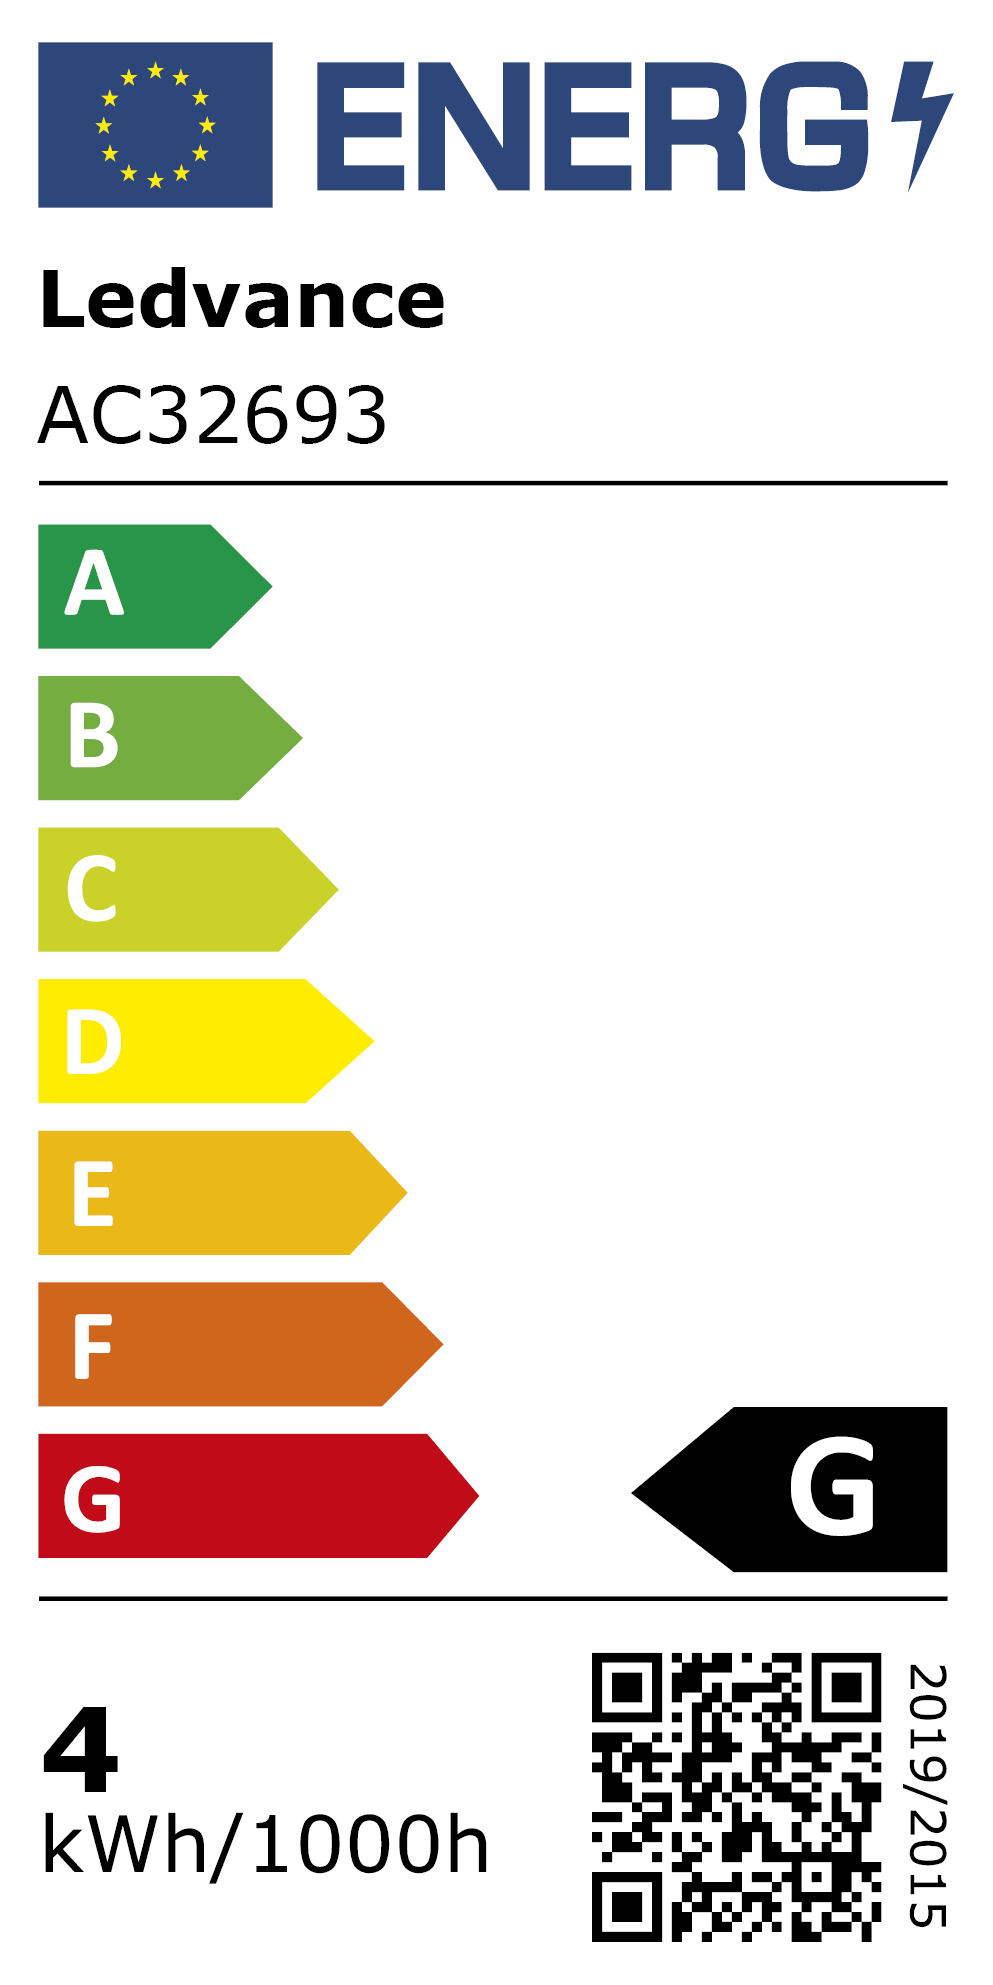 New 2021 Energy Rating Label: MPN AC32693